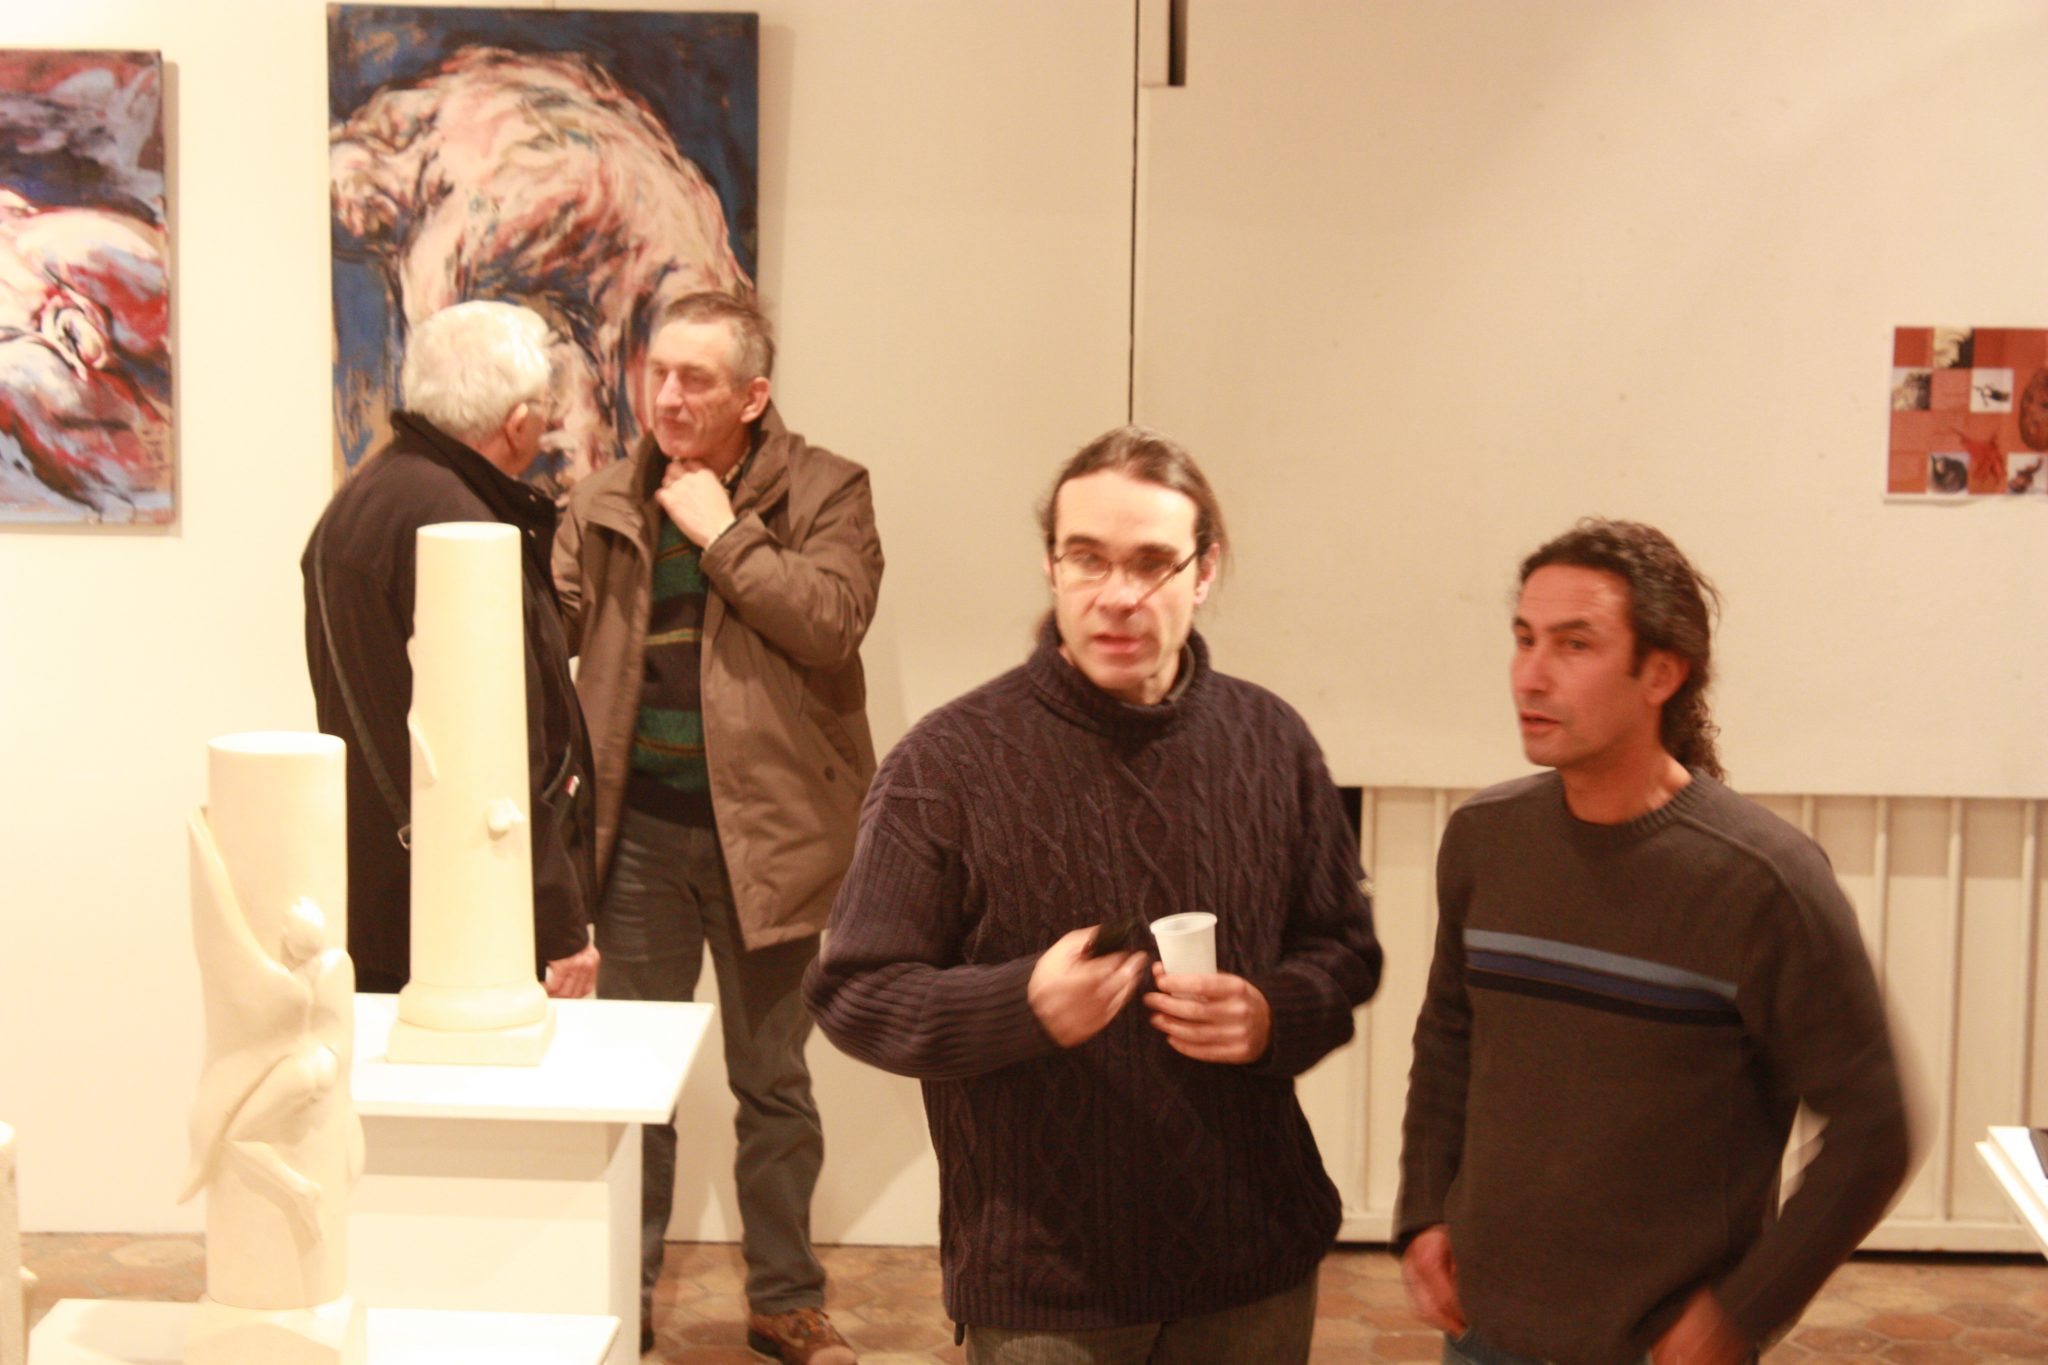 expositions_photo5